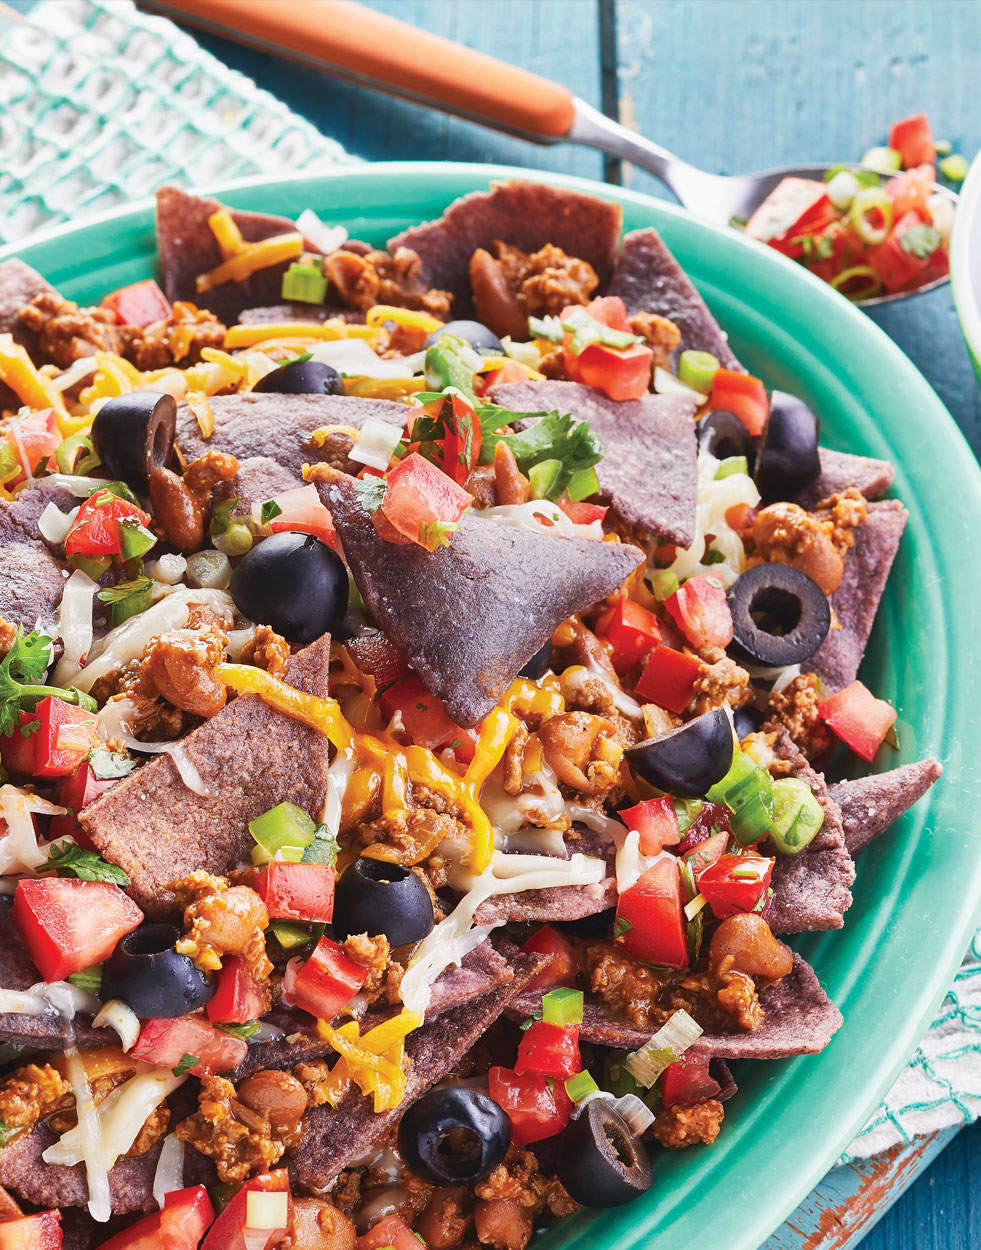 Loaded Nachos with Blue Corn Tortilla Chips